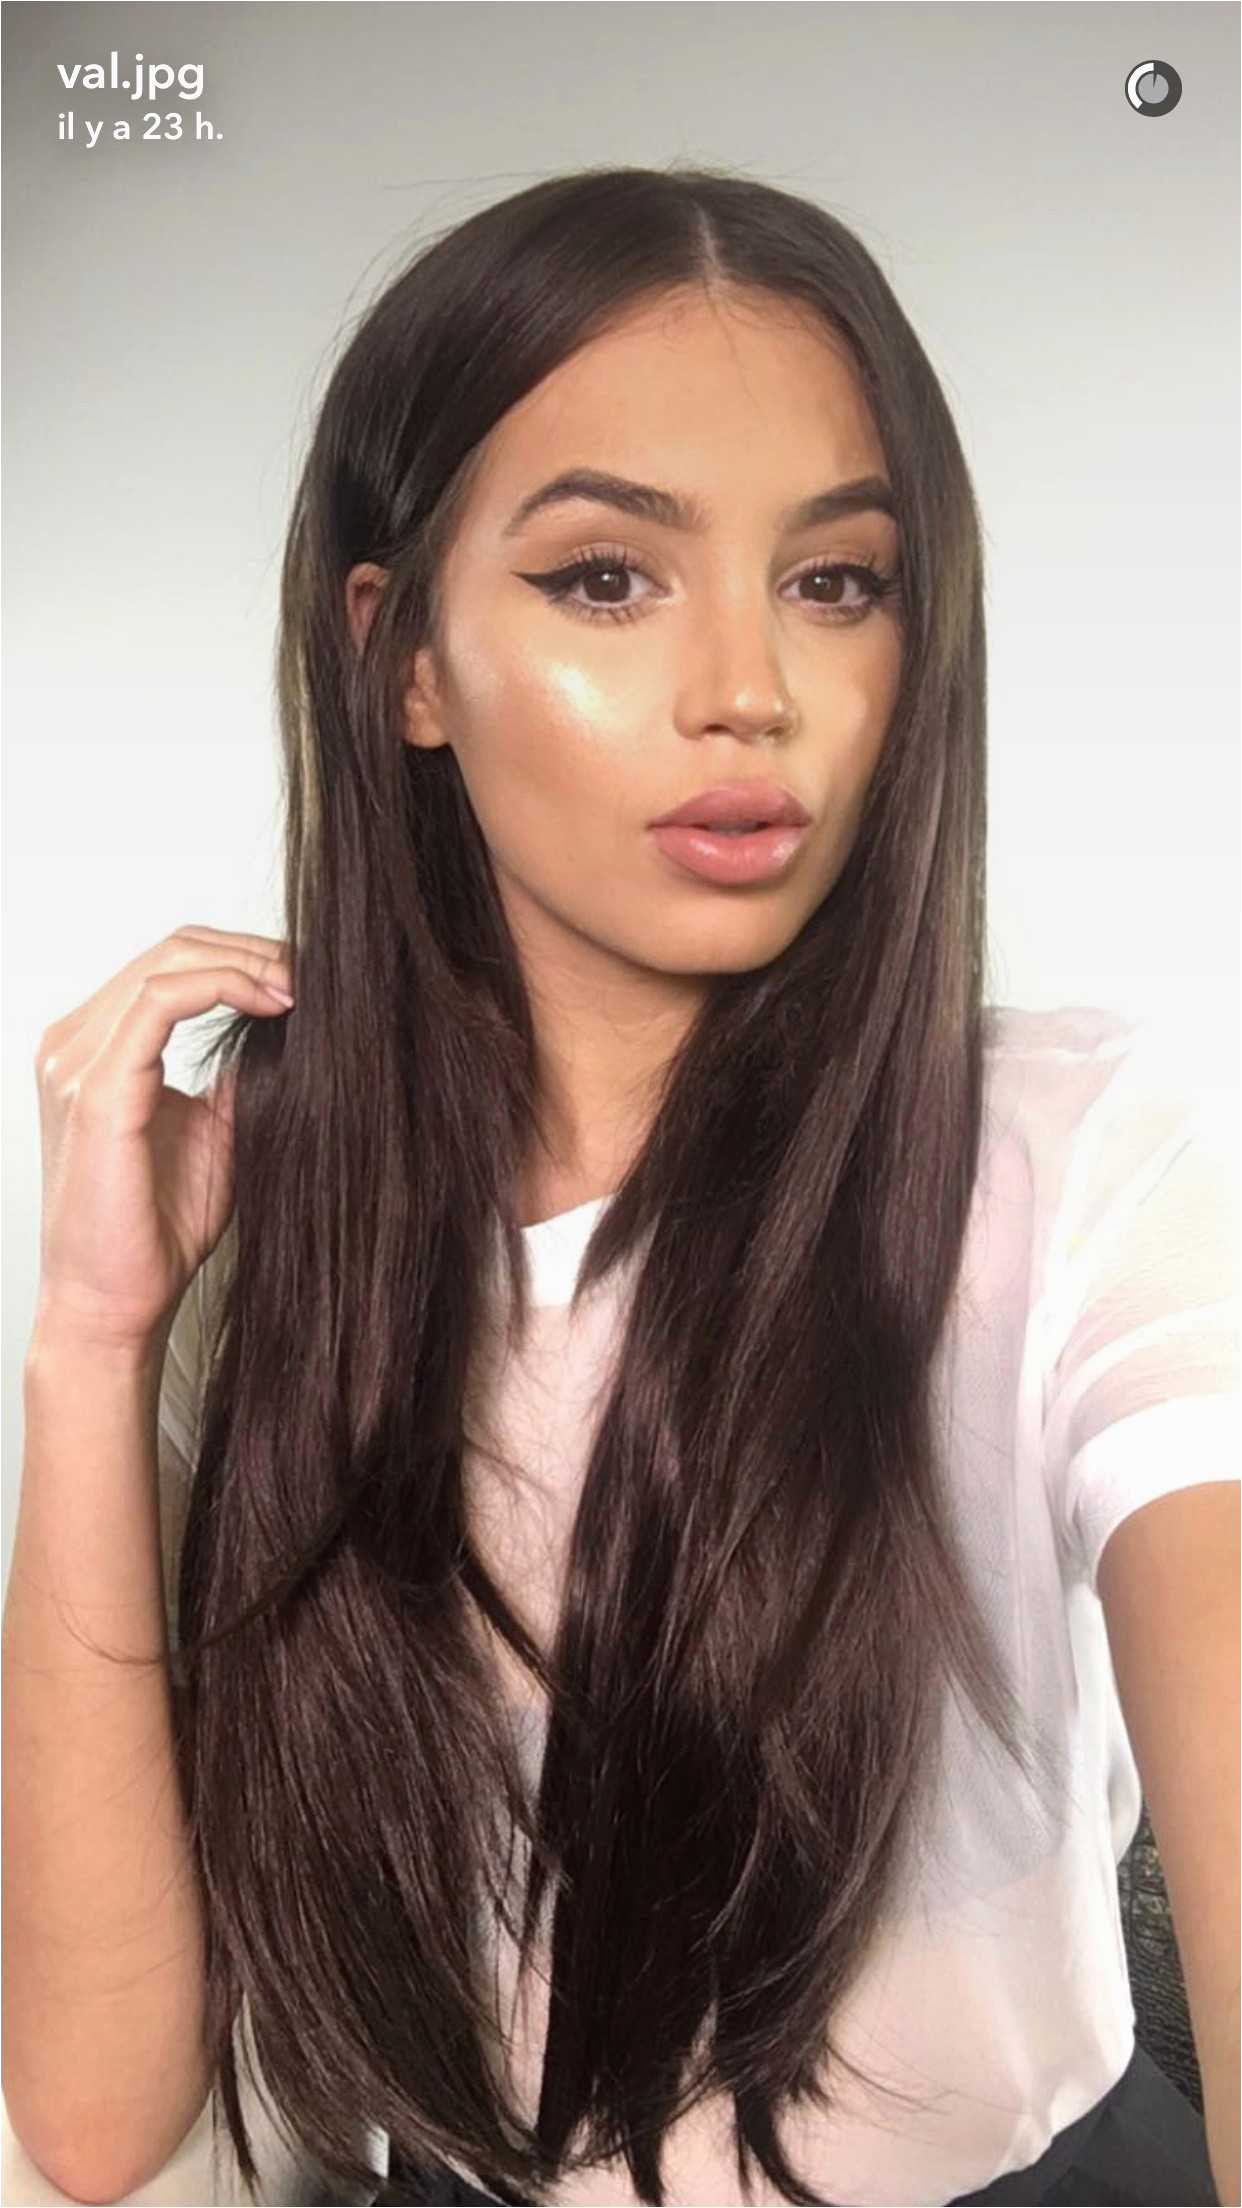 Best of Haircut and Style Awesome Best Hairstyle Pic Elegant Dyed Hair Style Especially Hairstyles for